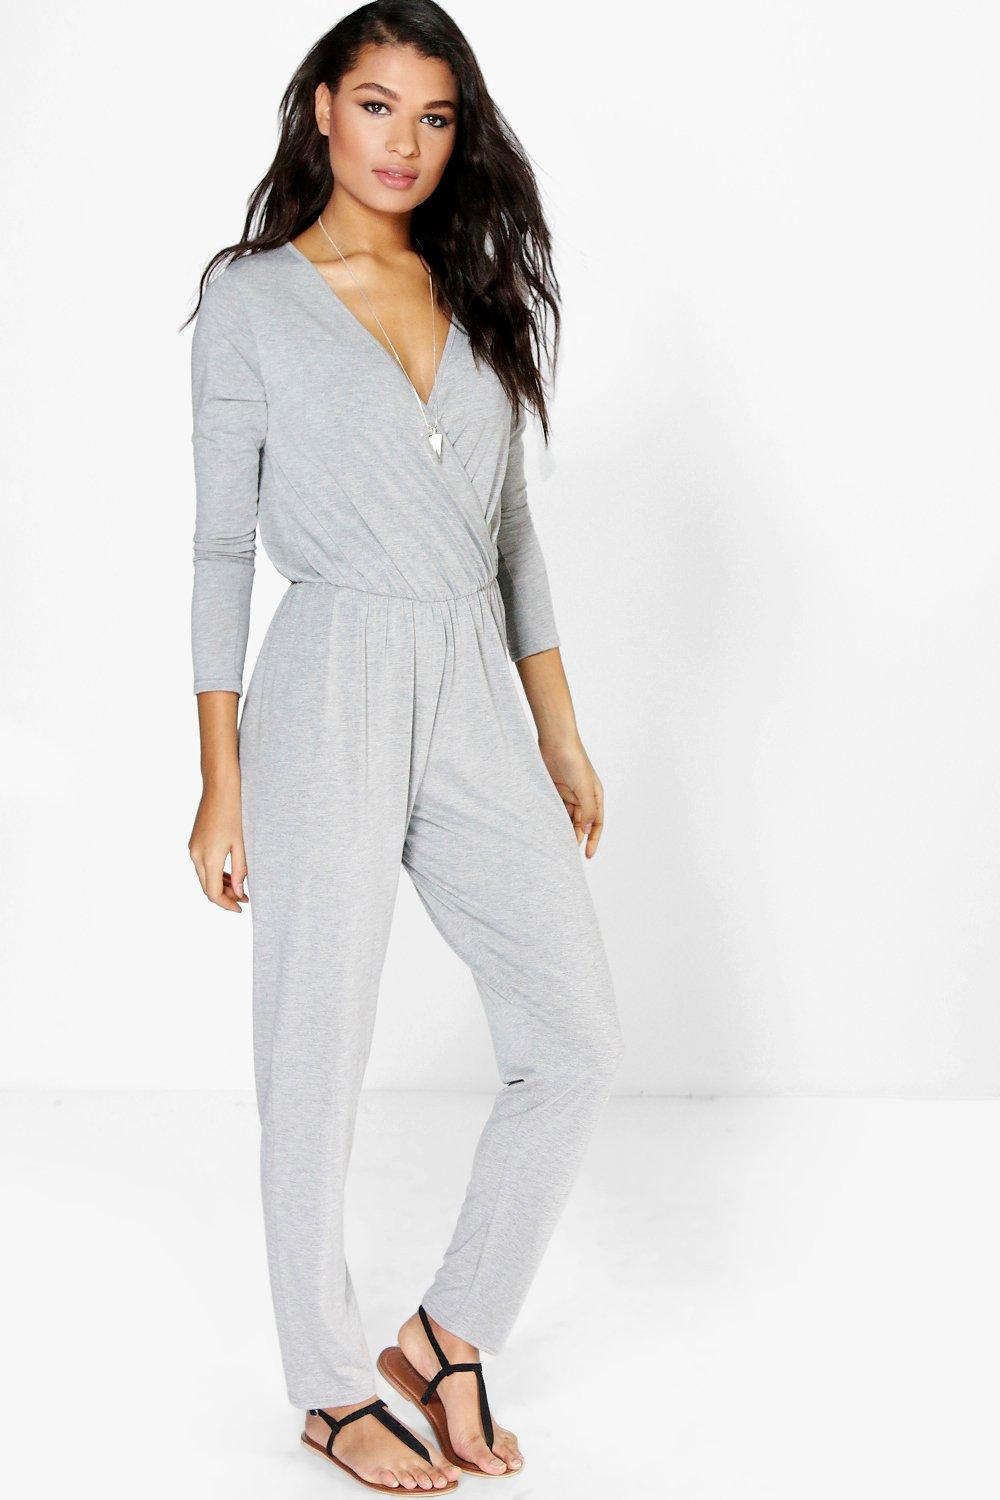 Cool Women Casual Jumpsuit Plus Size 3XL6XL Elegant Rompers Feet Jumpsuit